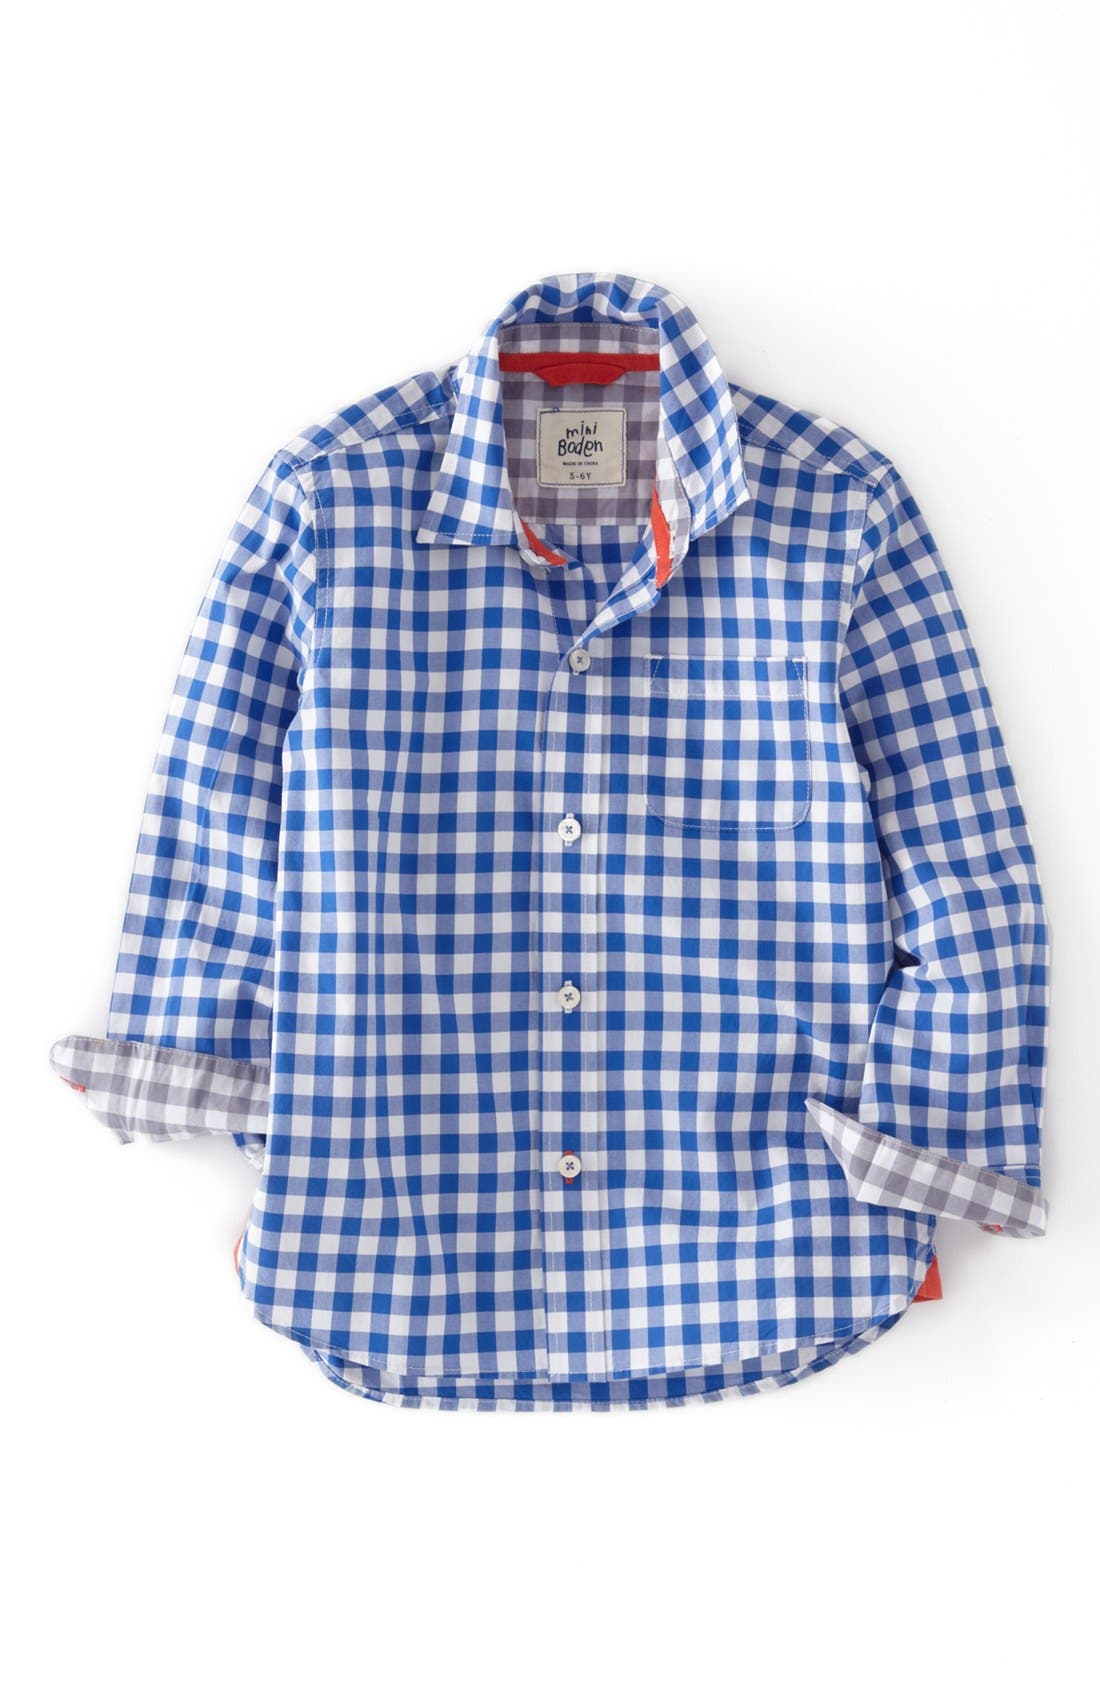 Alternate Image 1 Selected - Mini Boden Laundered Gingham Sport Shirt (Toddler Boys, Little Boys & Big Boys)